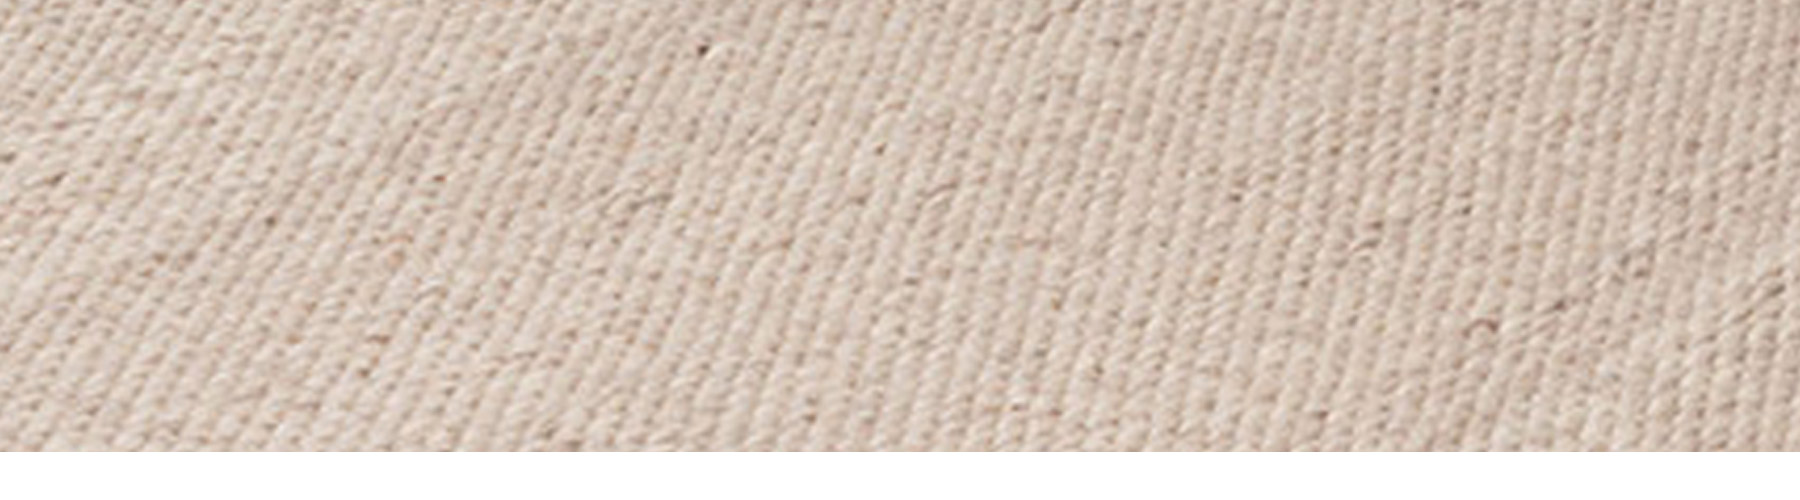 Exquisite Berber Ivoire Beige détails - Carpette Tapis William